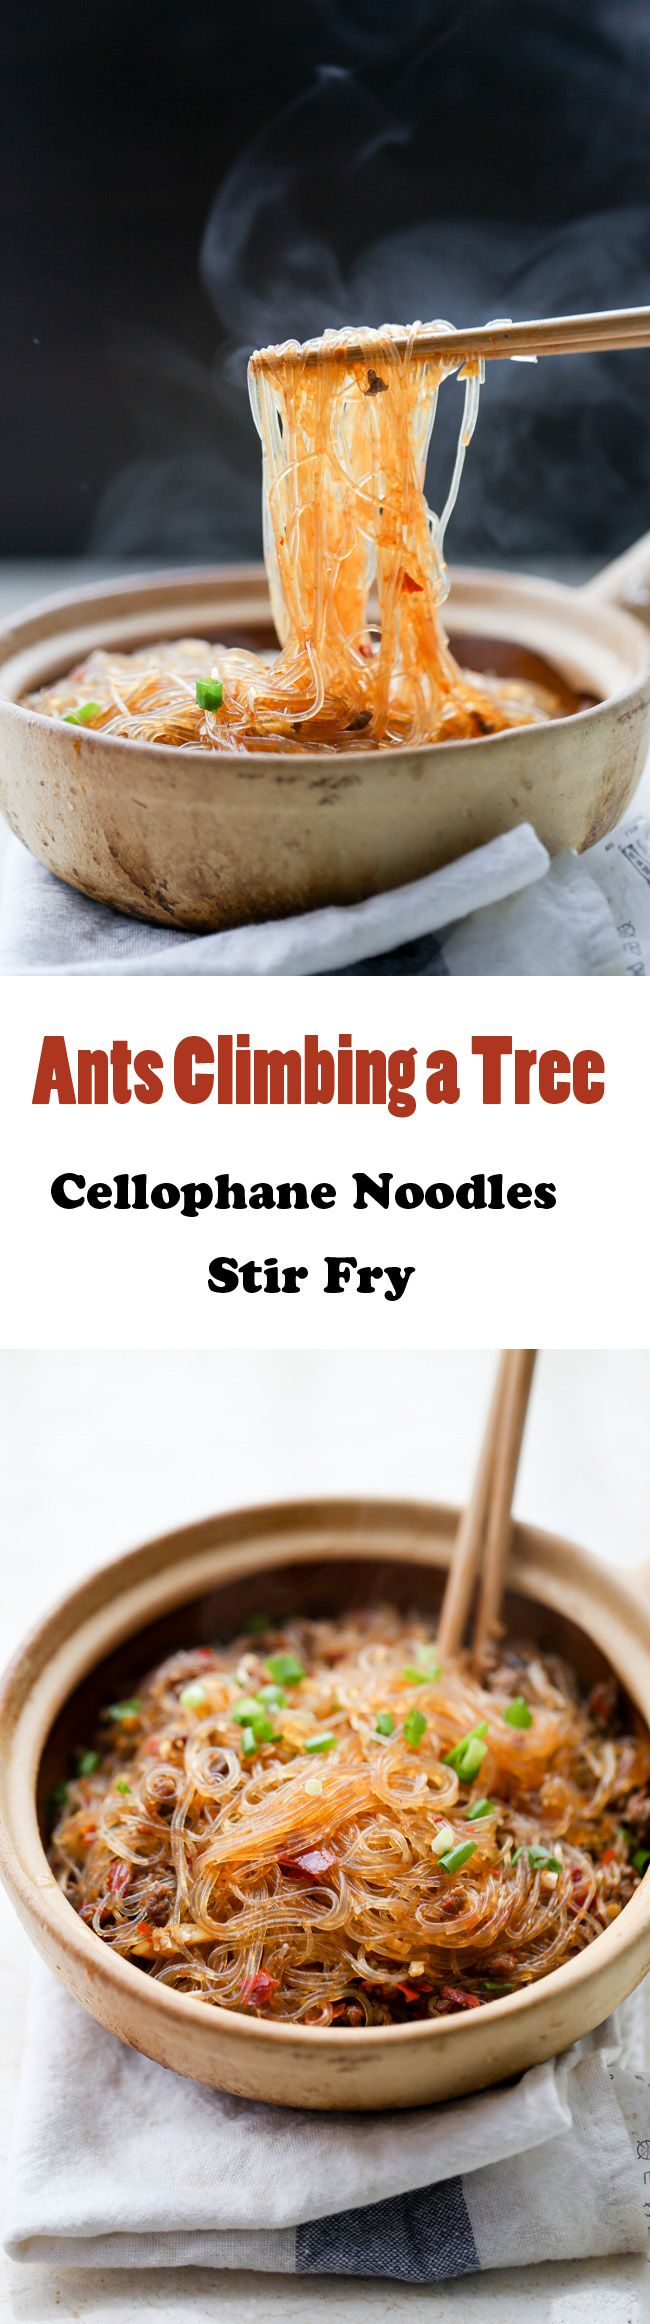 Ants Climbing a Tree-Cellophane Noodles Stir Fry | ChinaSichuanFood.com